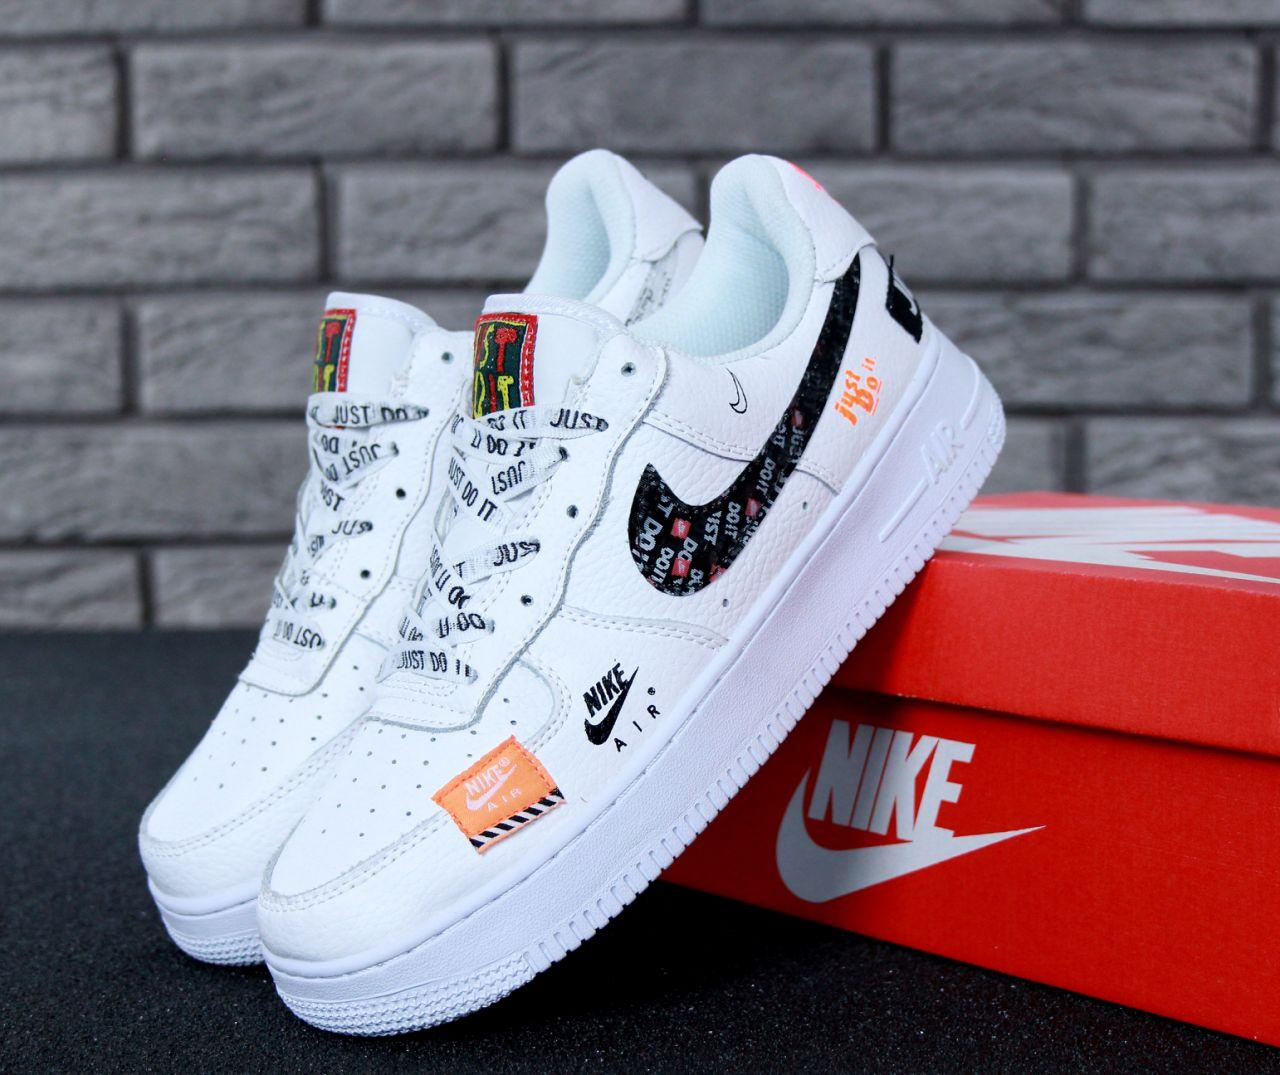 ef8bbcb6 Кроссовки мужские Nike Air Force 1 Low Just Do It Pack White Реплика ...